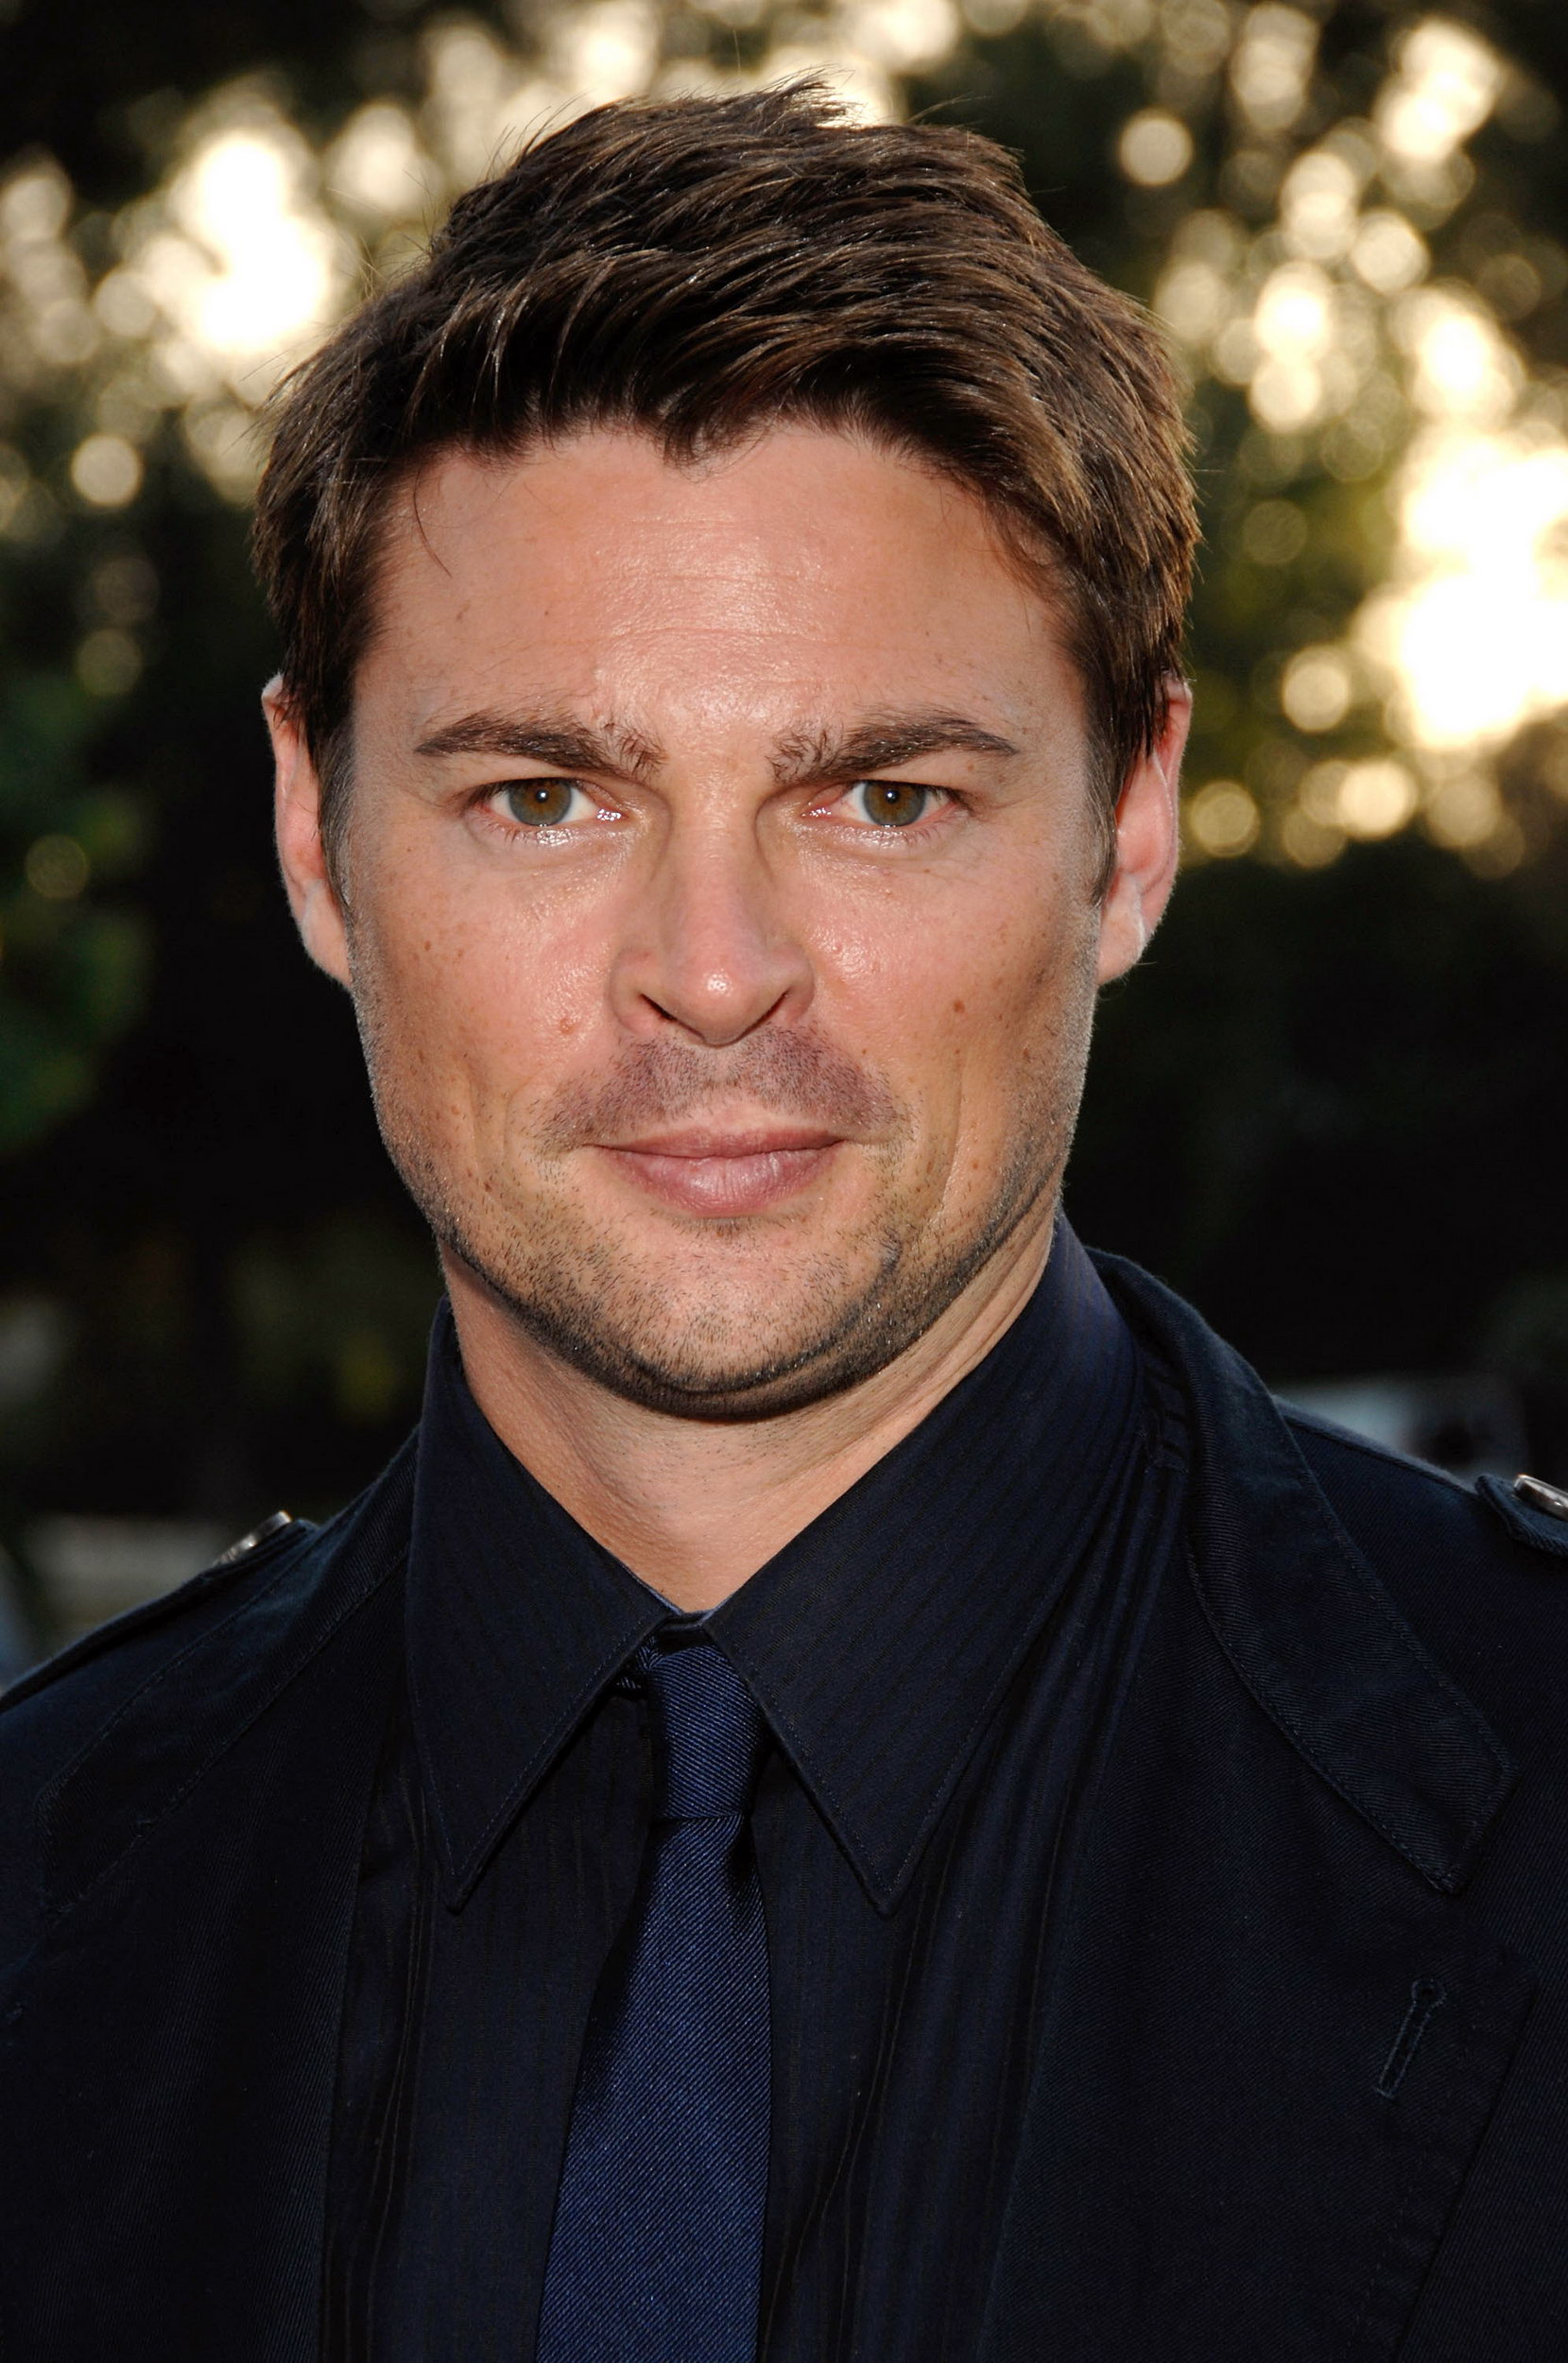 karl urban bald